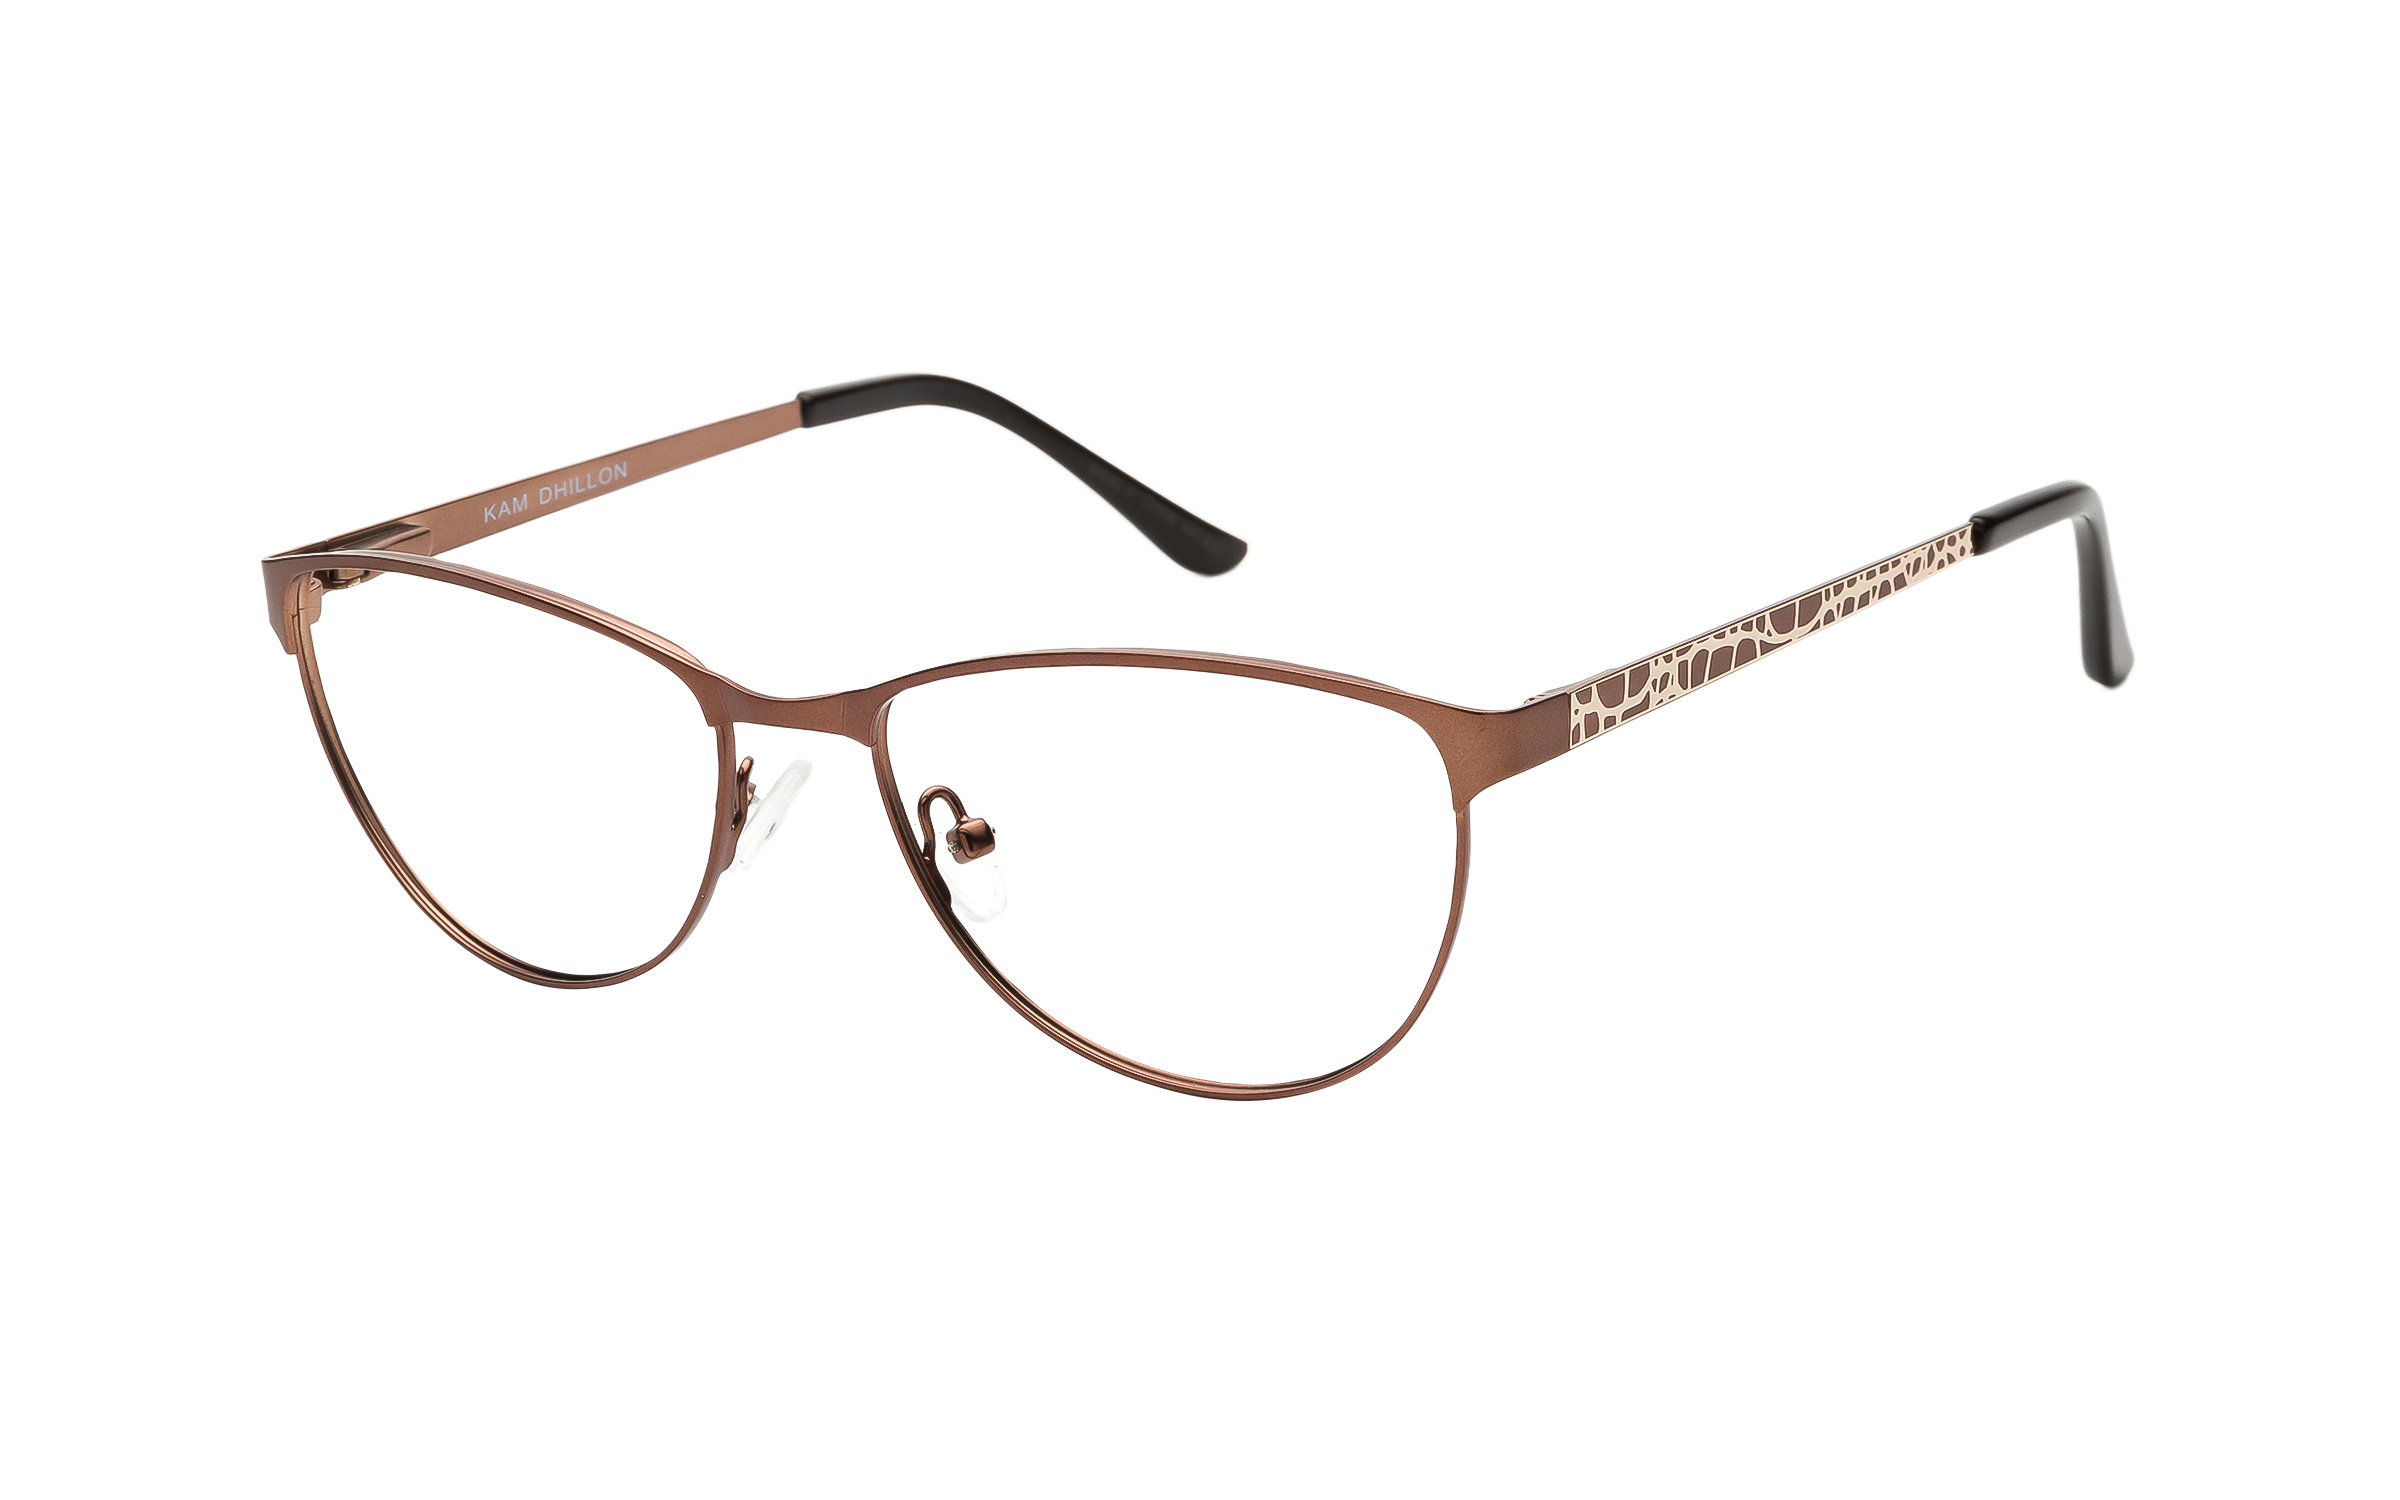 Women's Wing-Tip Glasses Brown Kam Dhillon Online Clearly